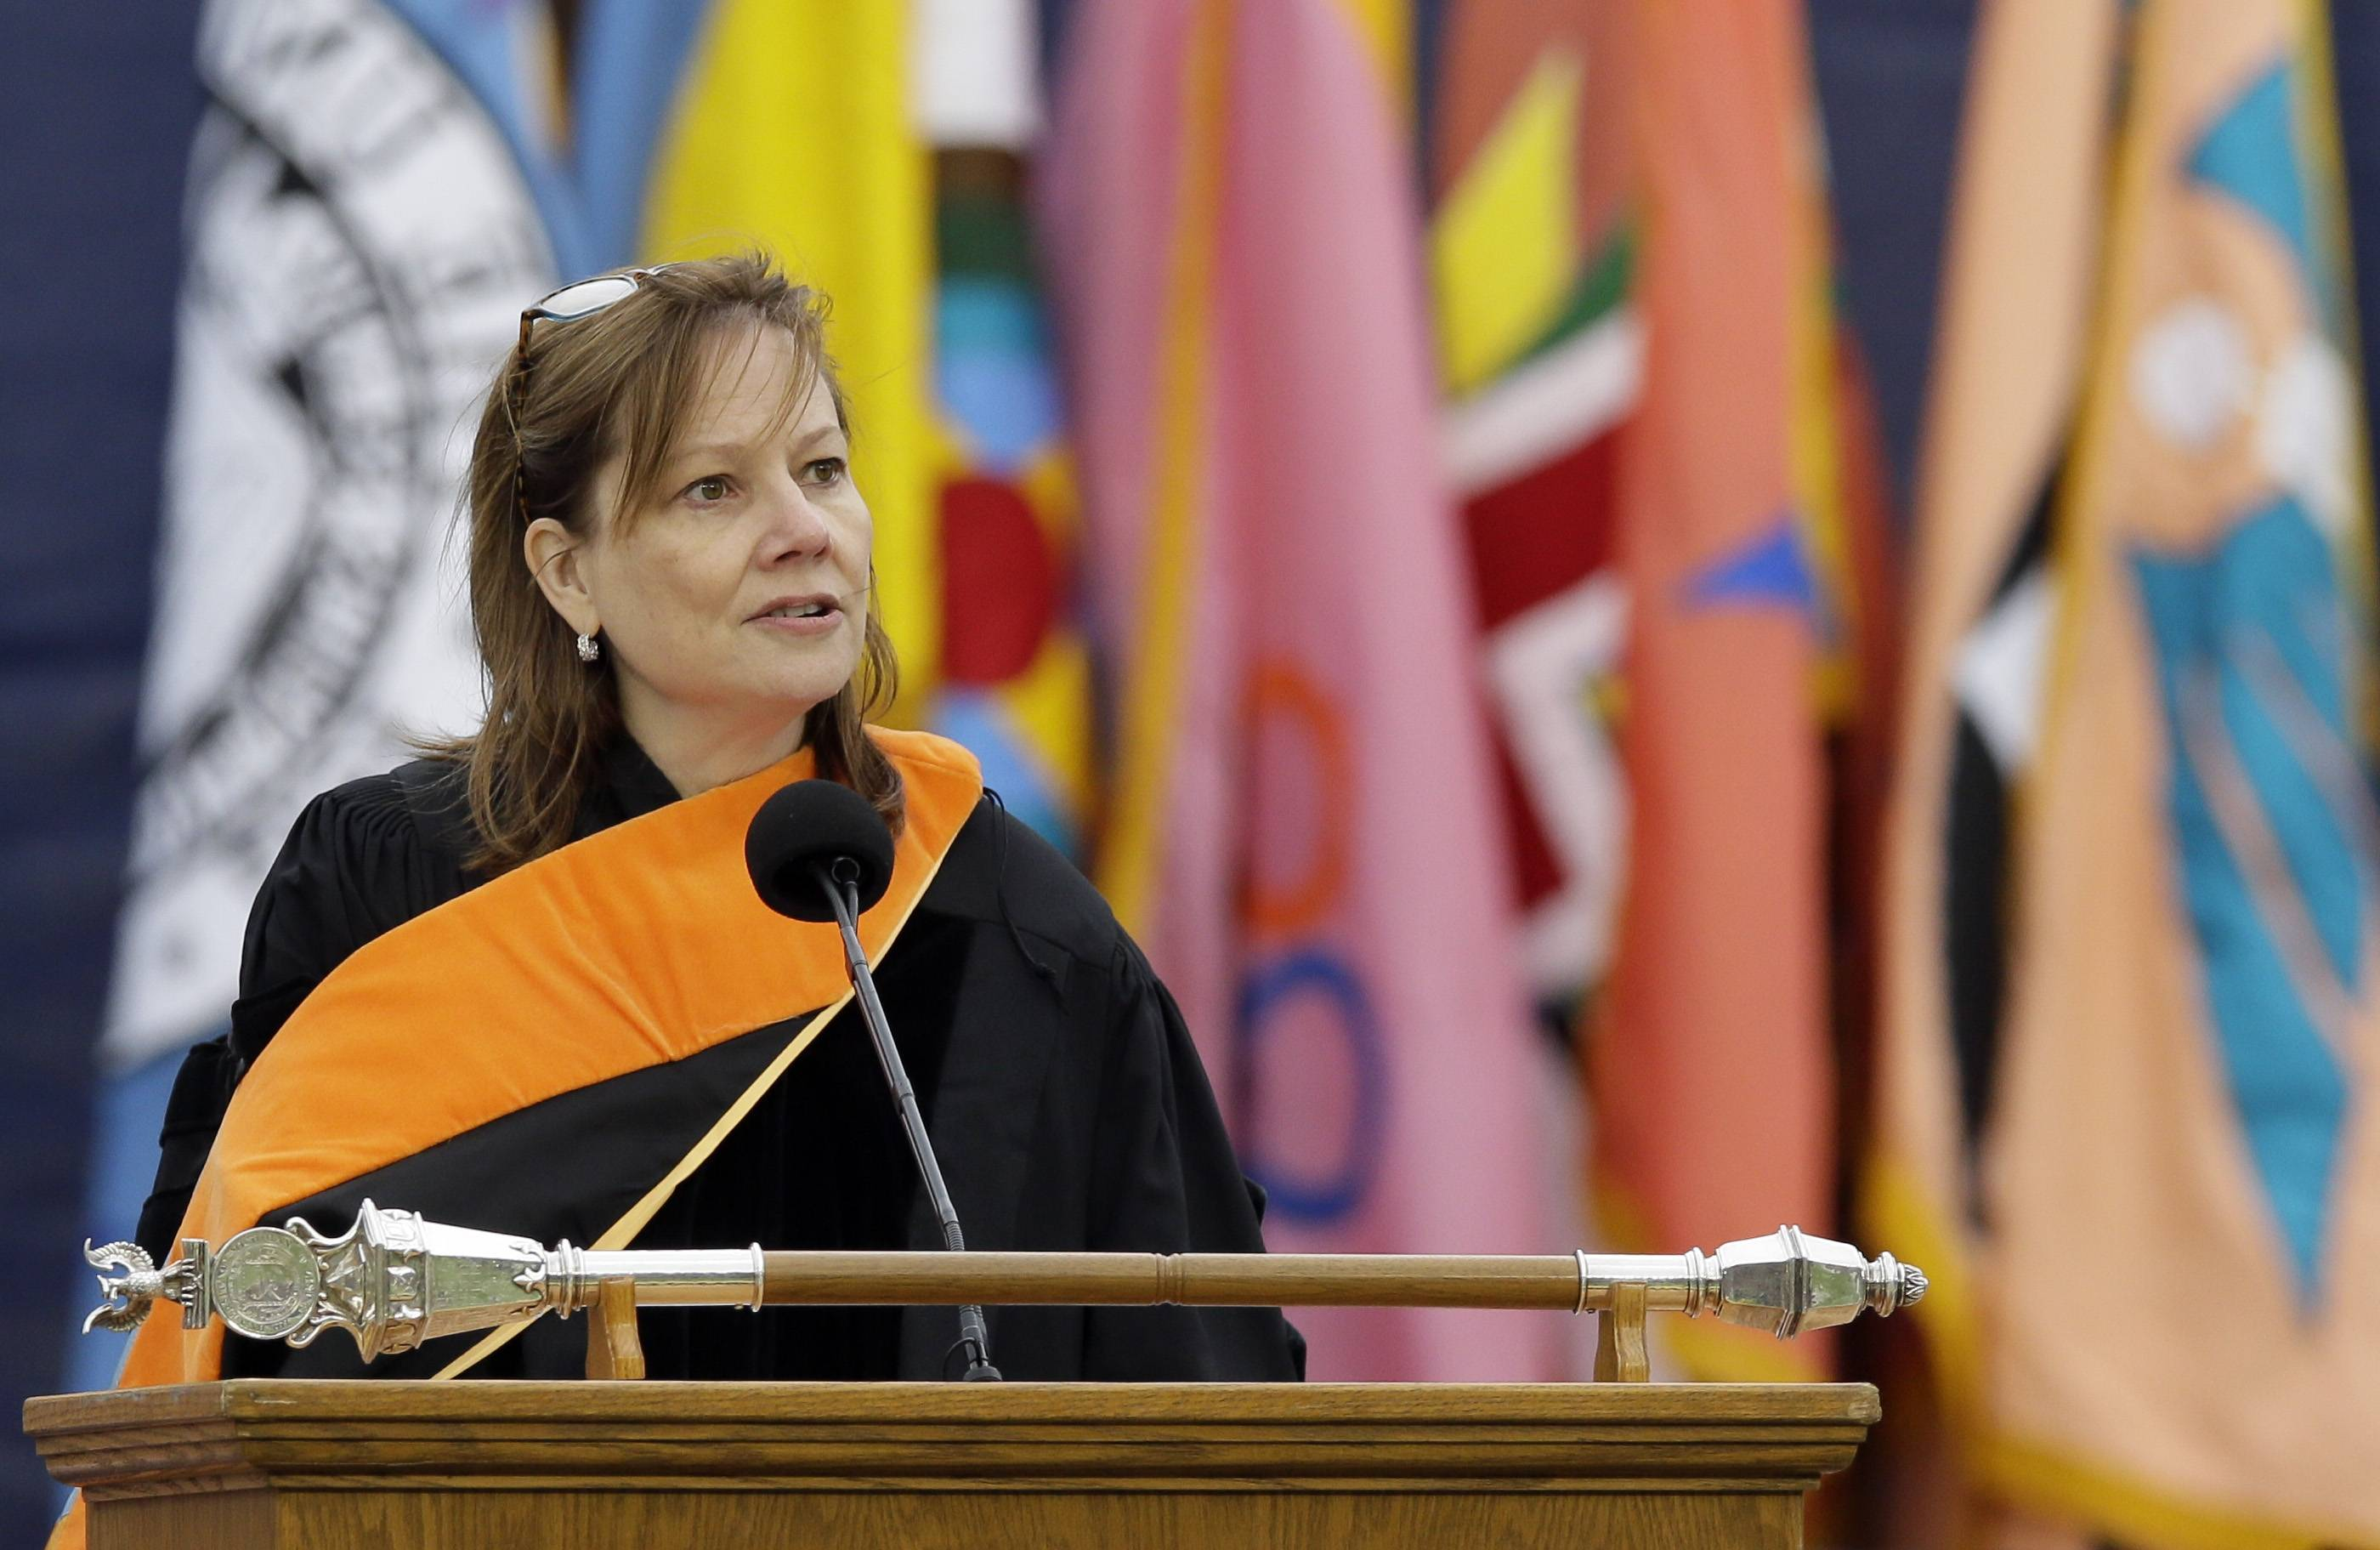 General Motors CEO Mary Barra, addresses the University of Michigan graduates at a commencement ceremony.